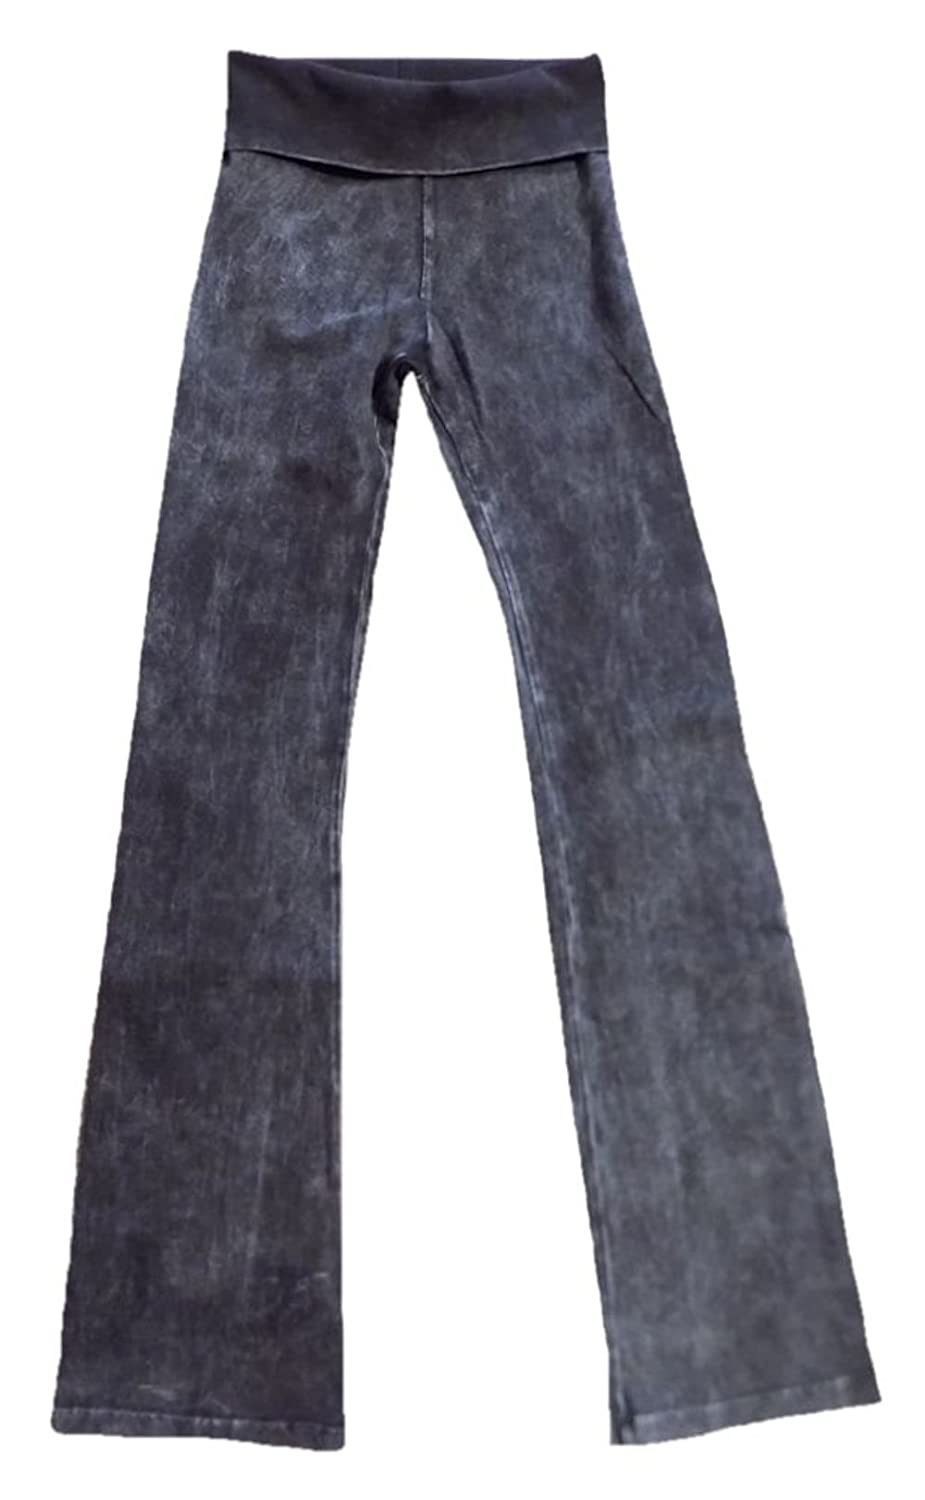 Hard Tail Rolldown Bootleg Flare – Mineral Wash – ブラック XS Mineral Wash - Black B01L0979DK